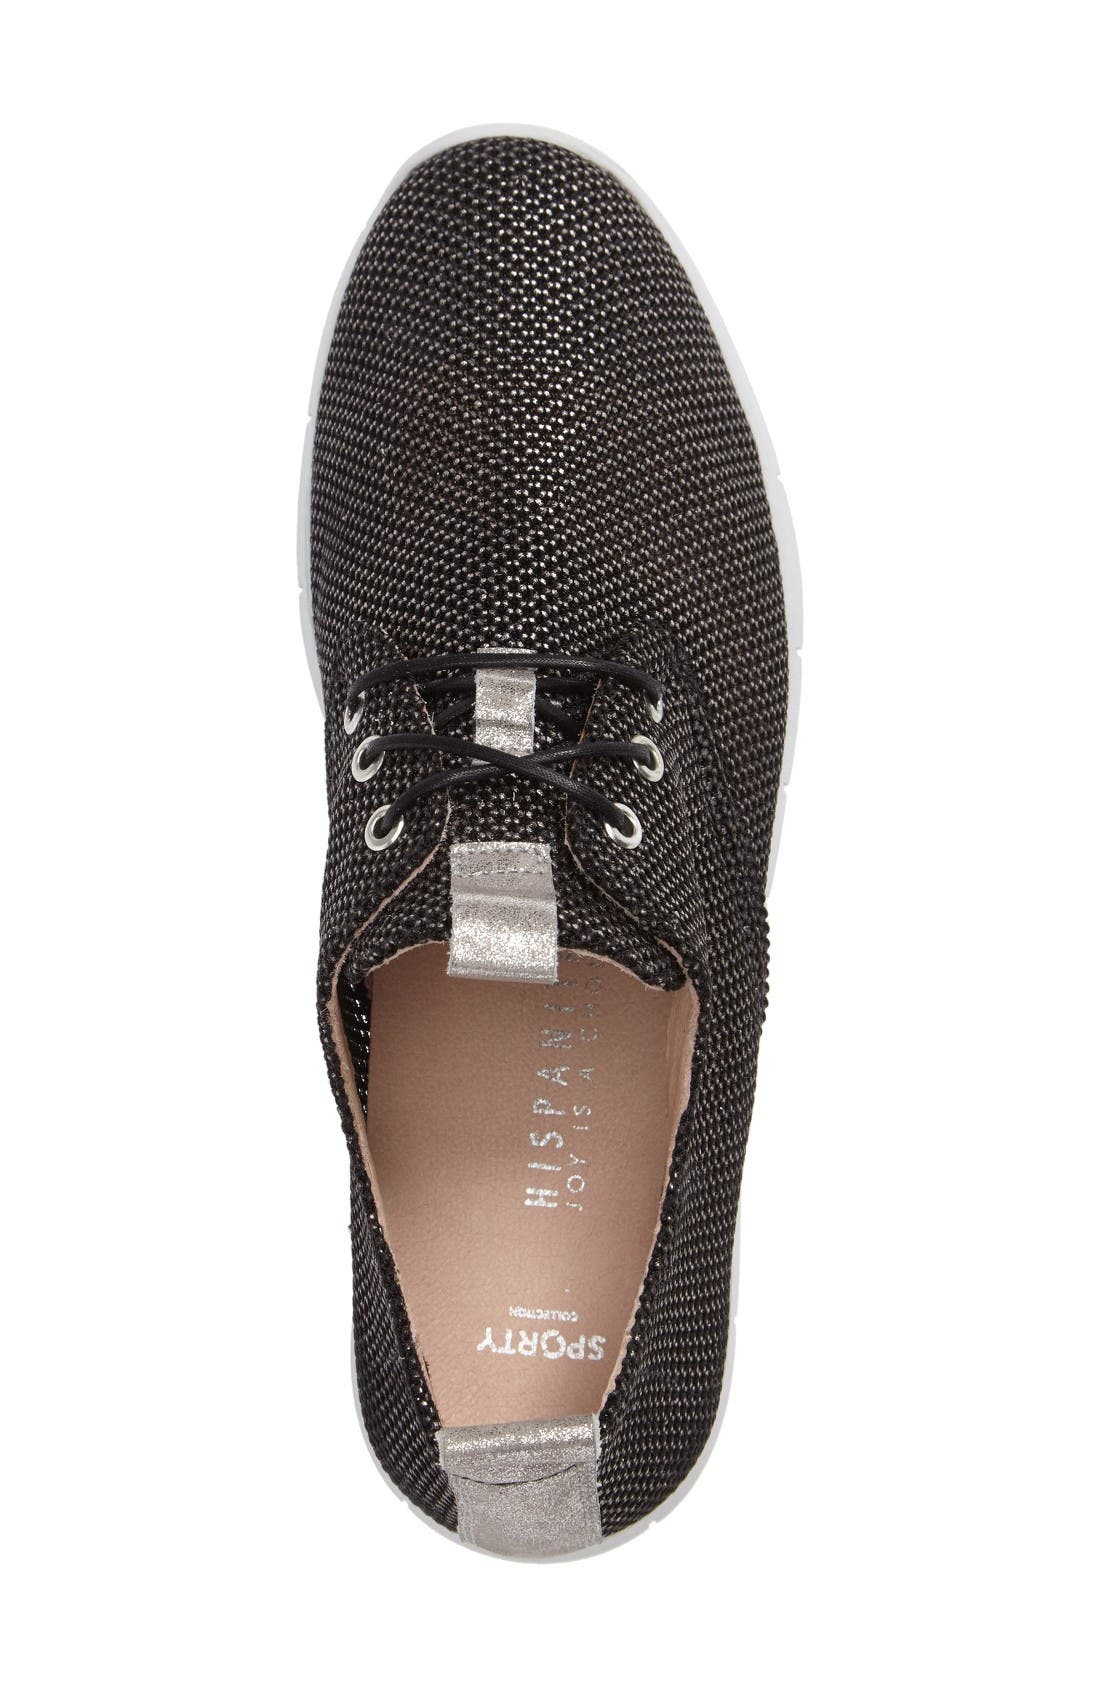 Gala Perforated Sneaker,                             Alternate thumbnail 3, color,                             Bionic Black Leather